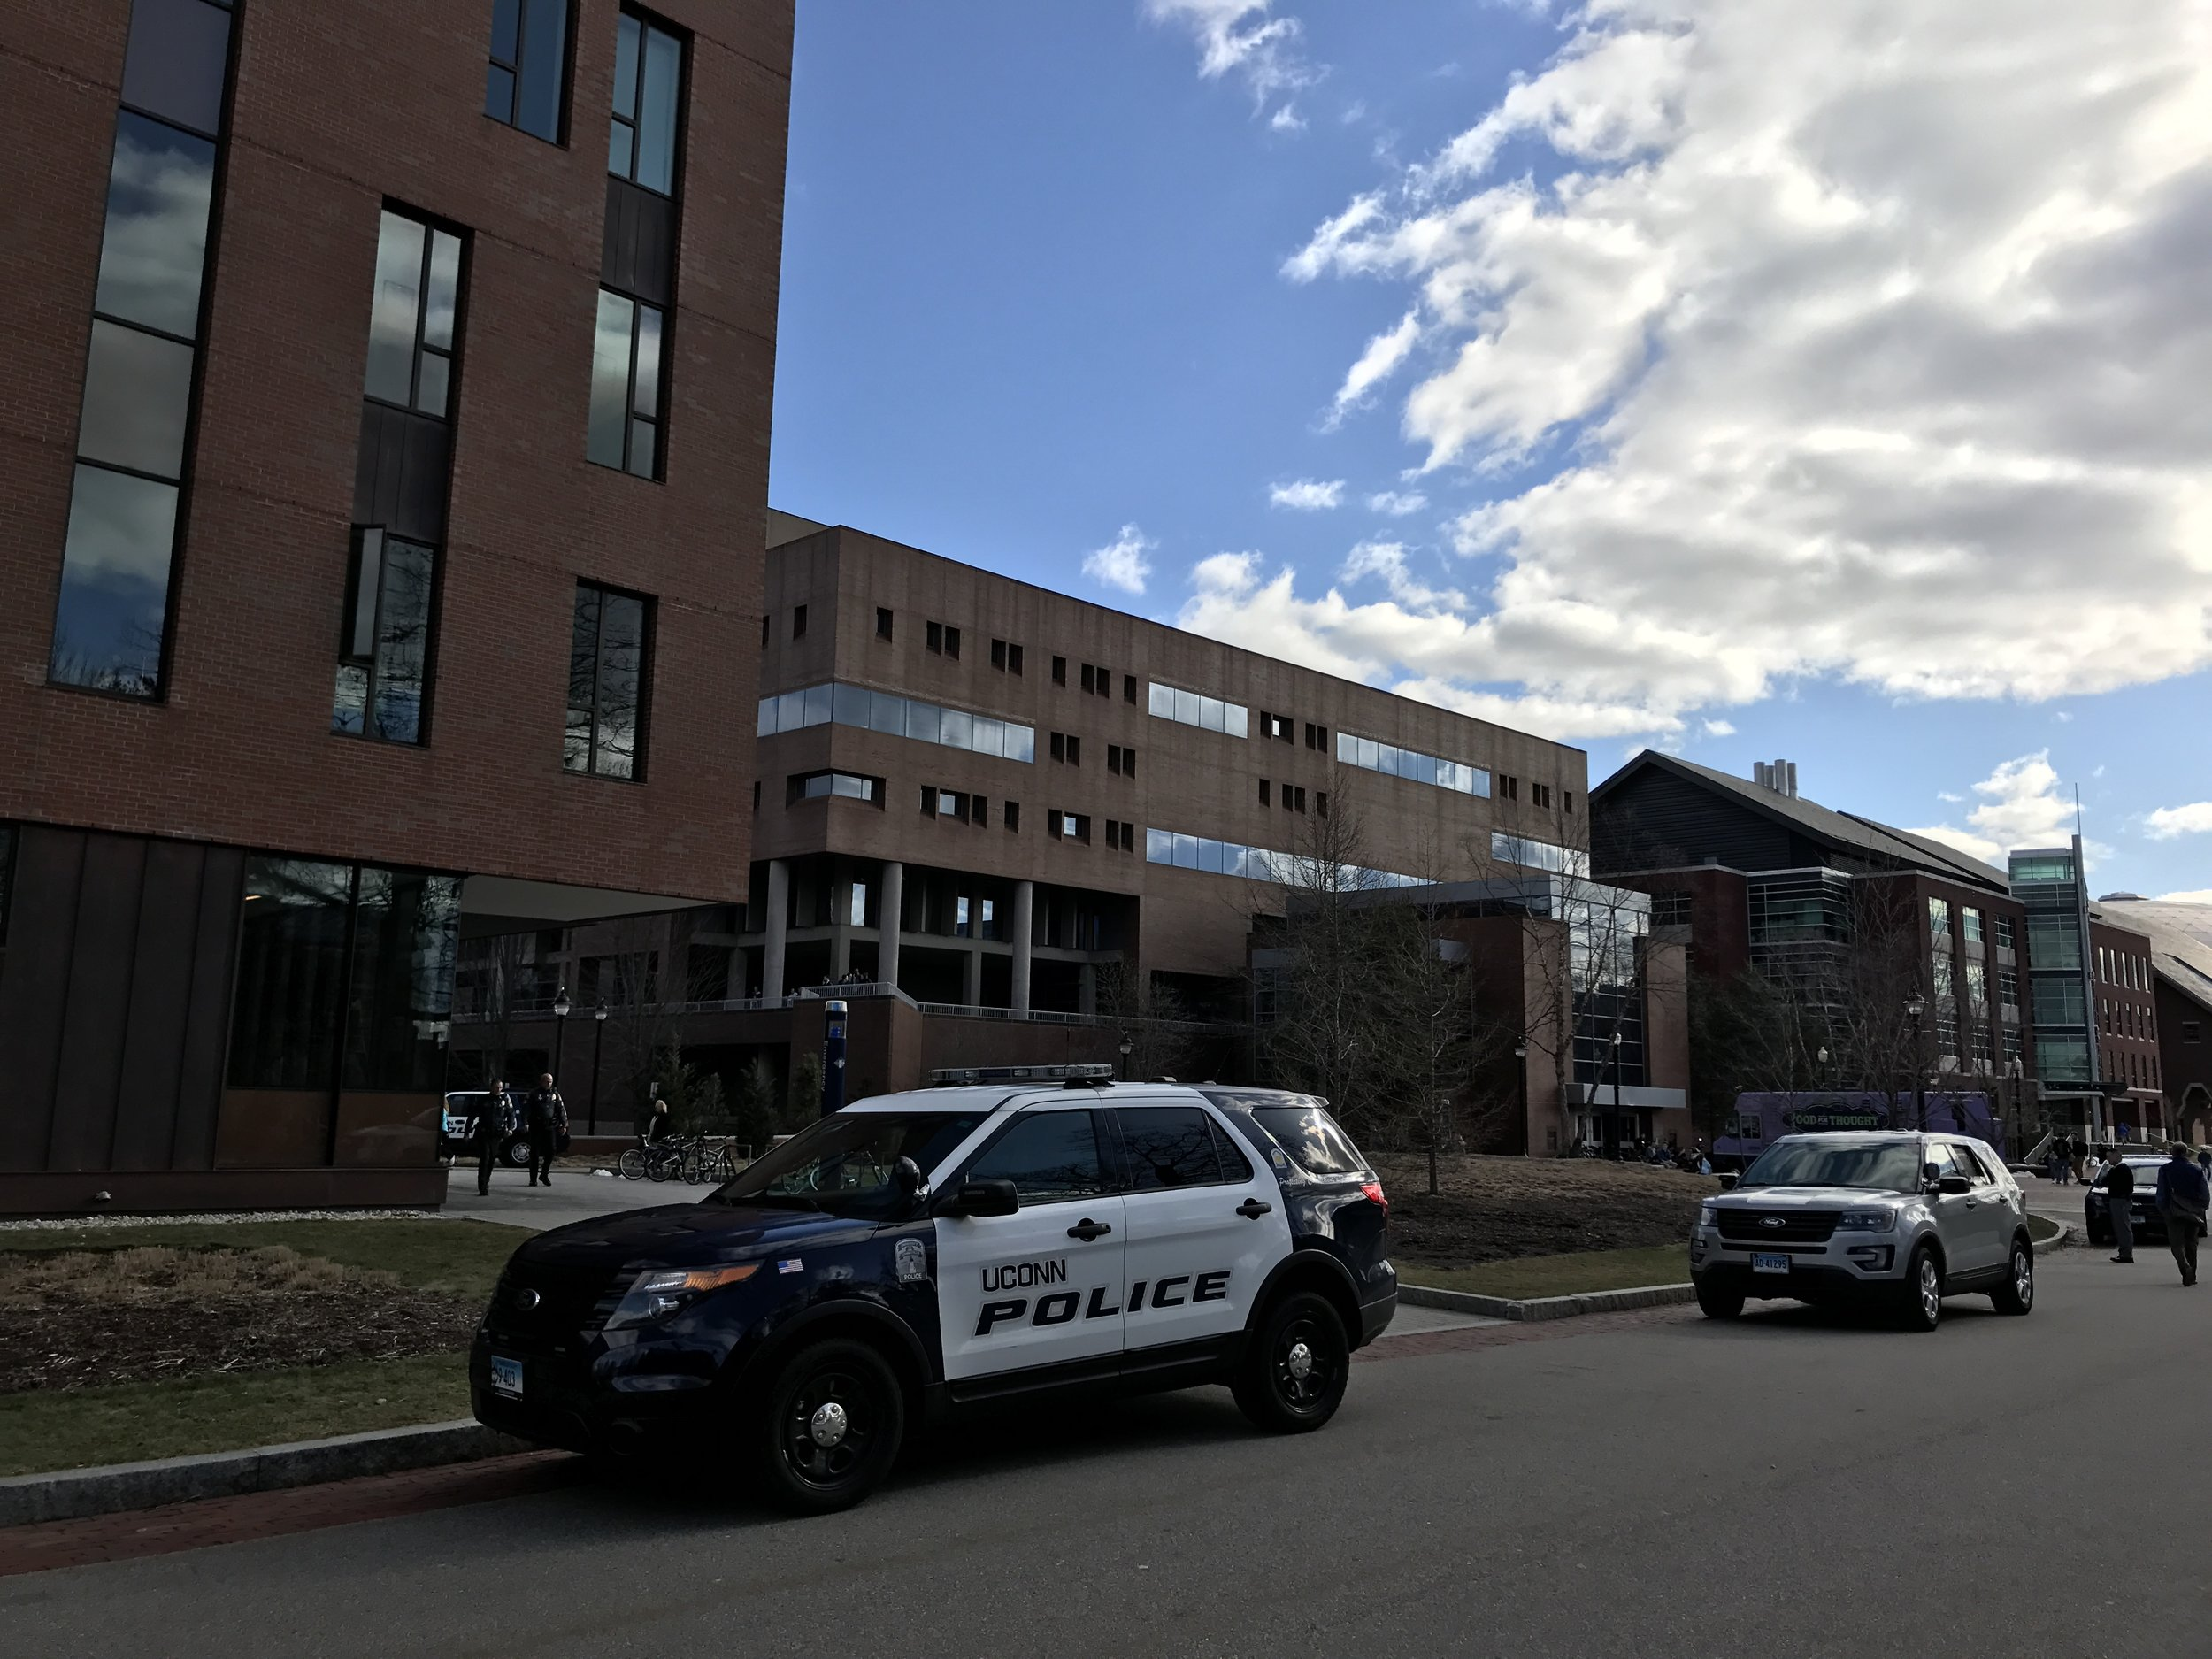 UConn police said they were called after someone over heard a concerning conversation. (Owen Bonaventura/The Daily Campus)